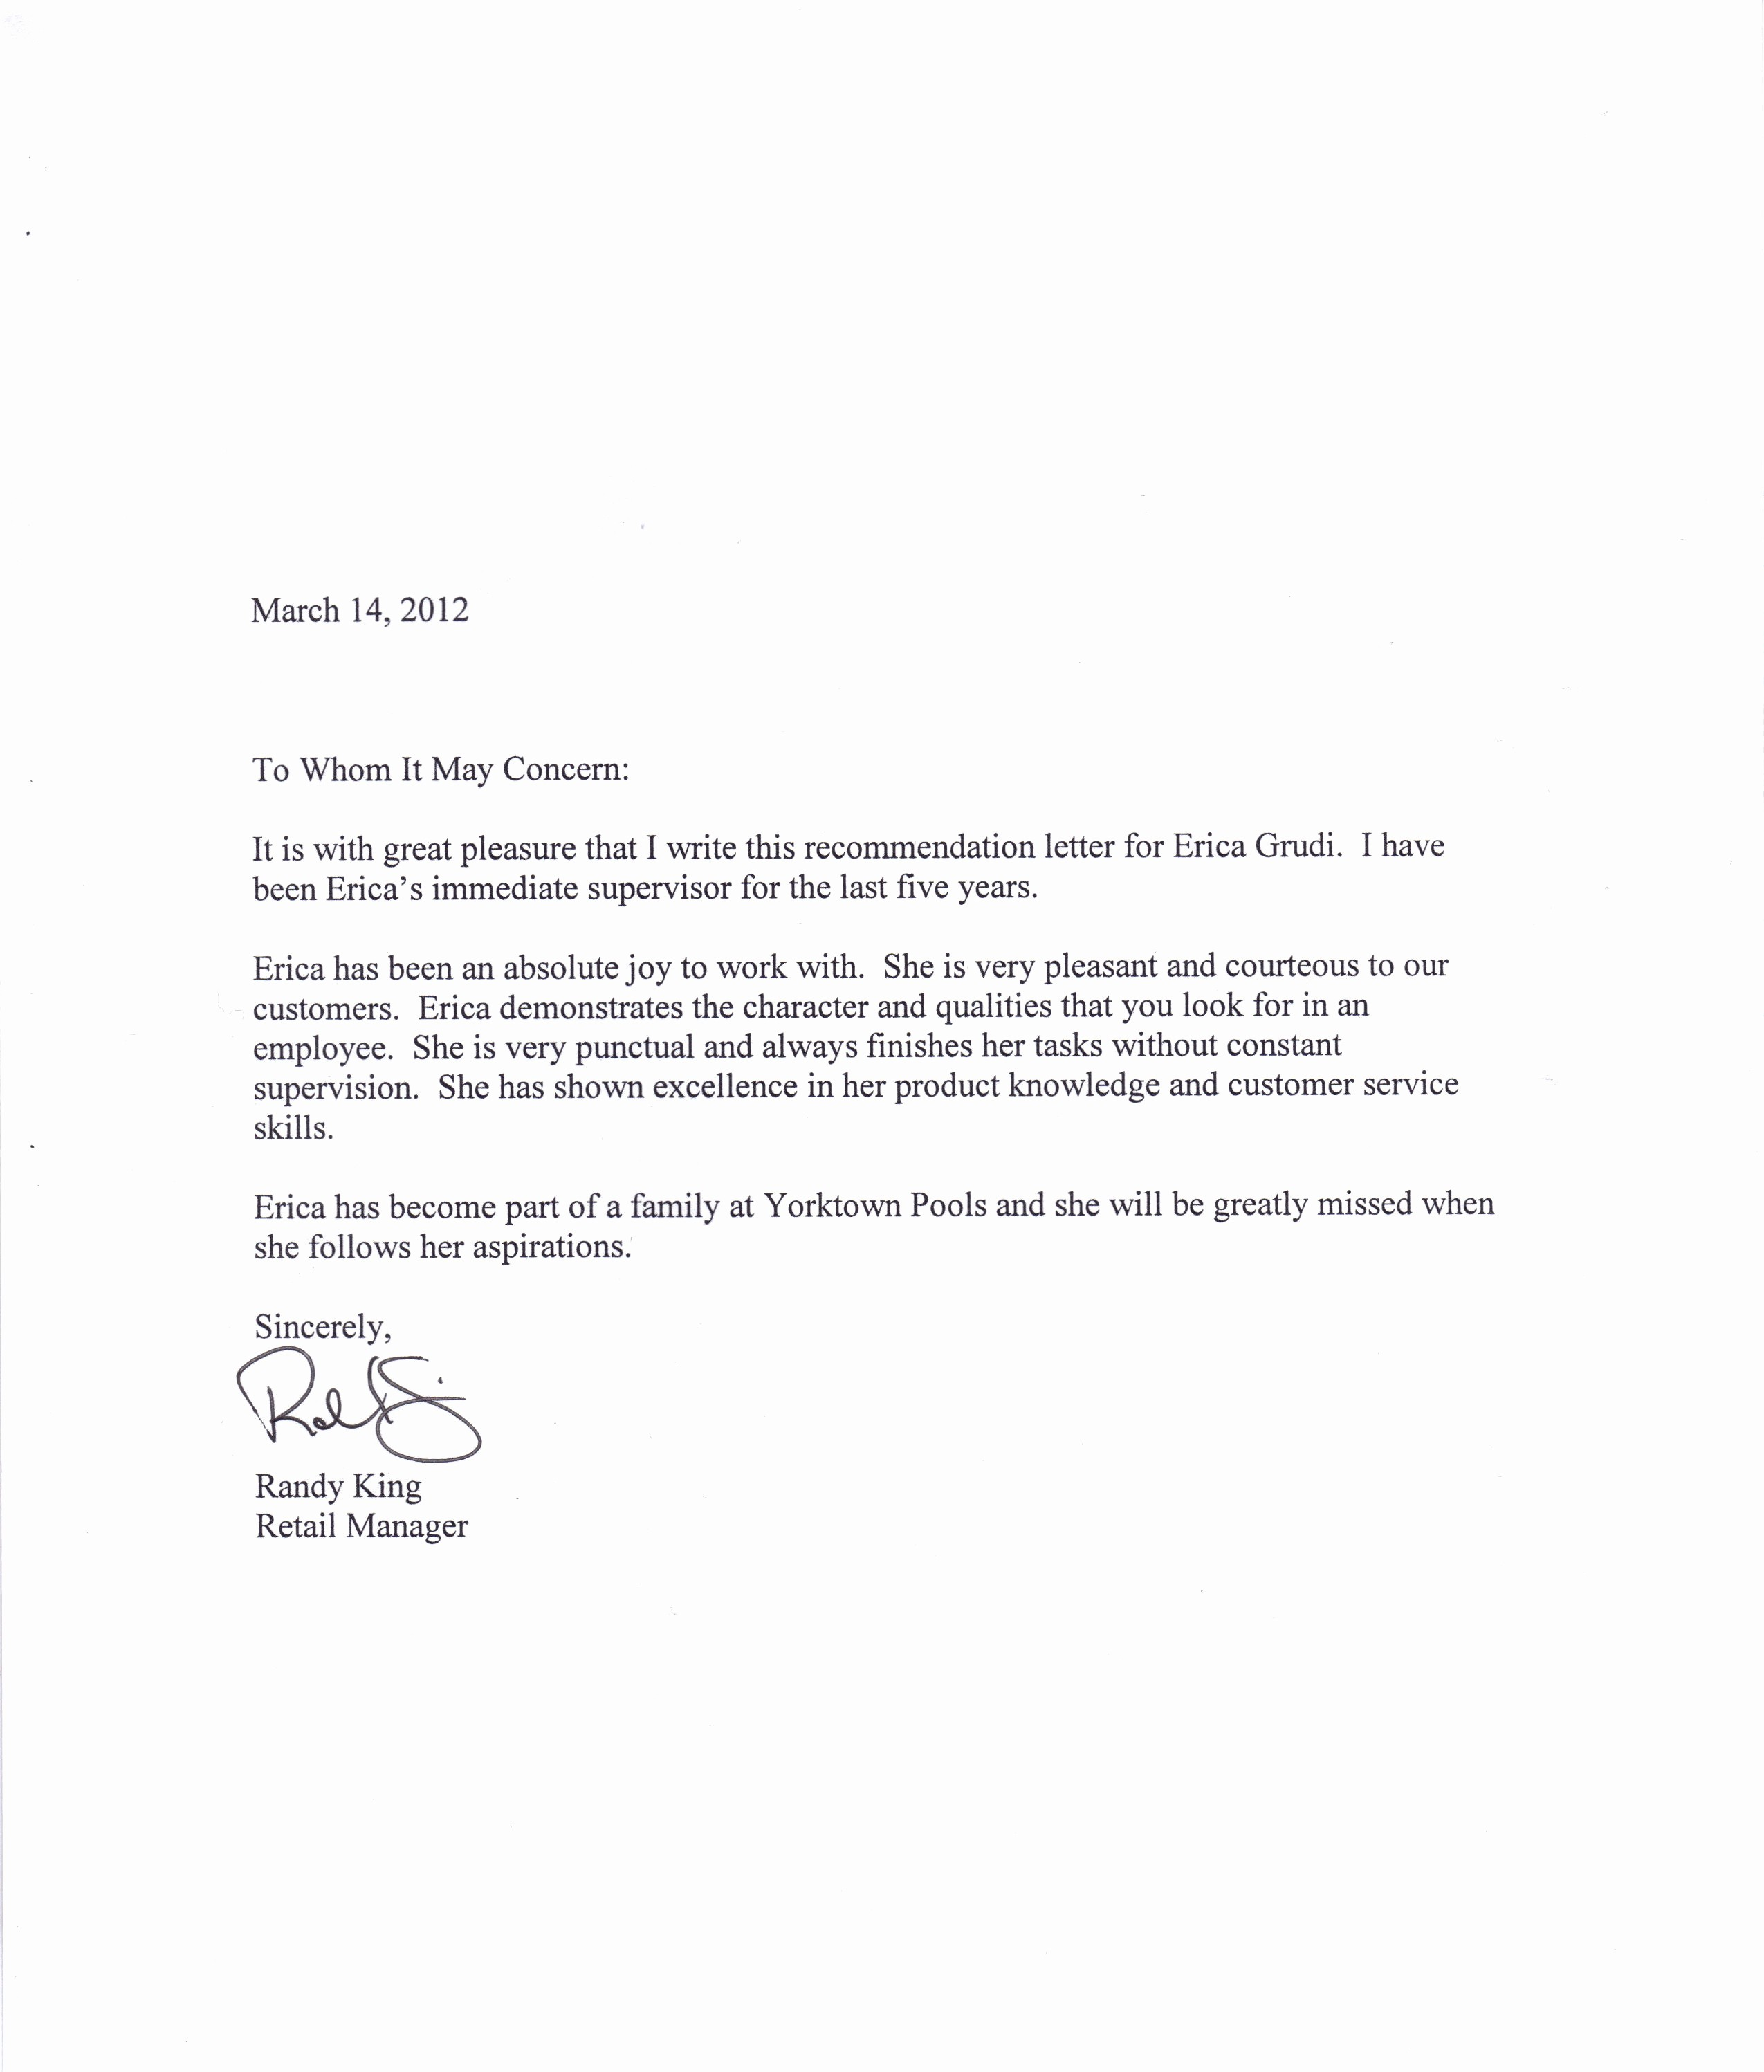 Sample Professional Letter Of Recommendation Lovely Free Re Mendation Letter Download